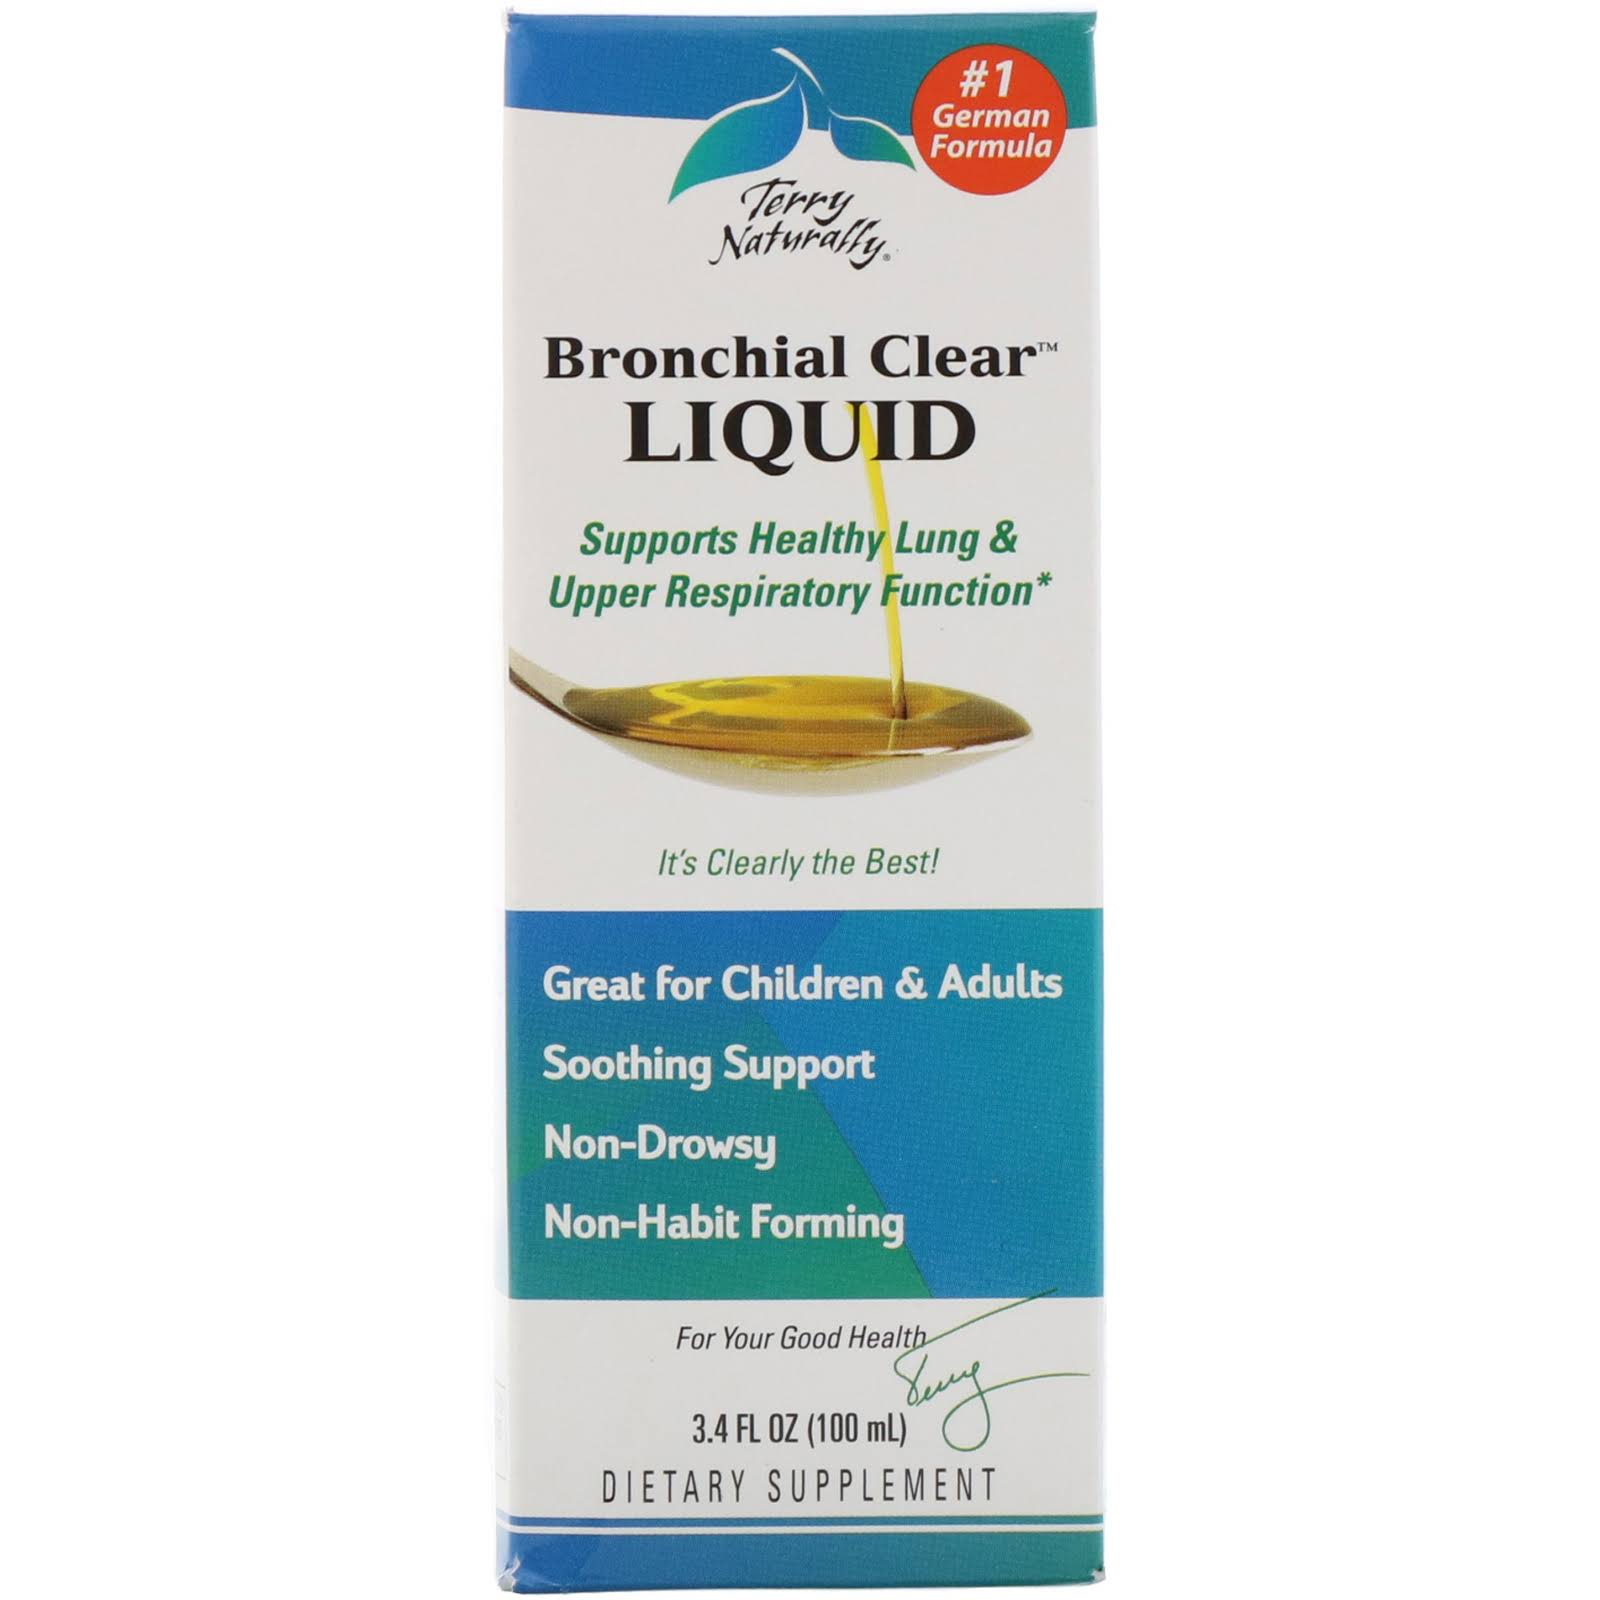 Bronchial Clear Liquid Europharma Supplement - 3.4oz, 100ml